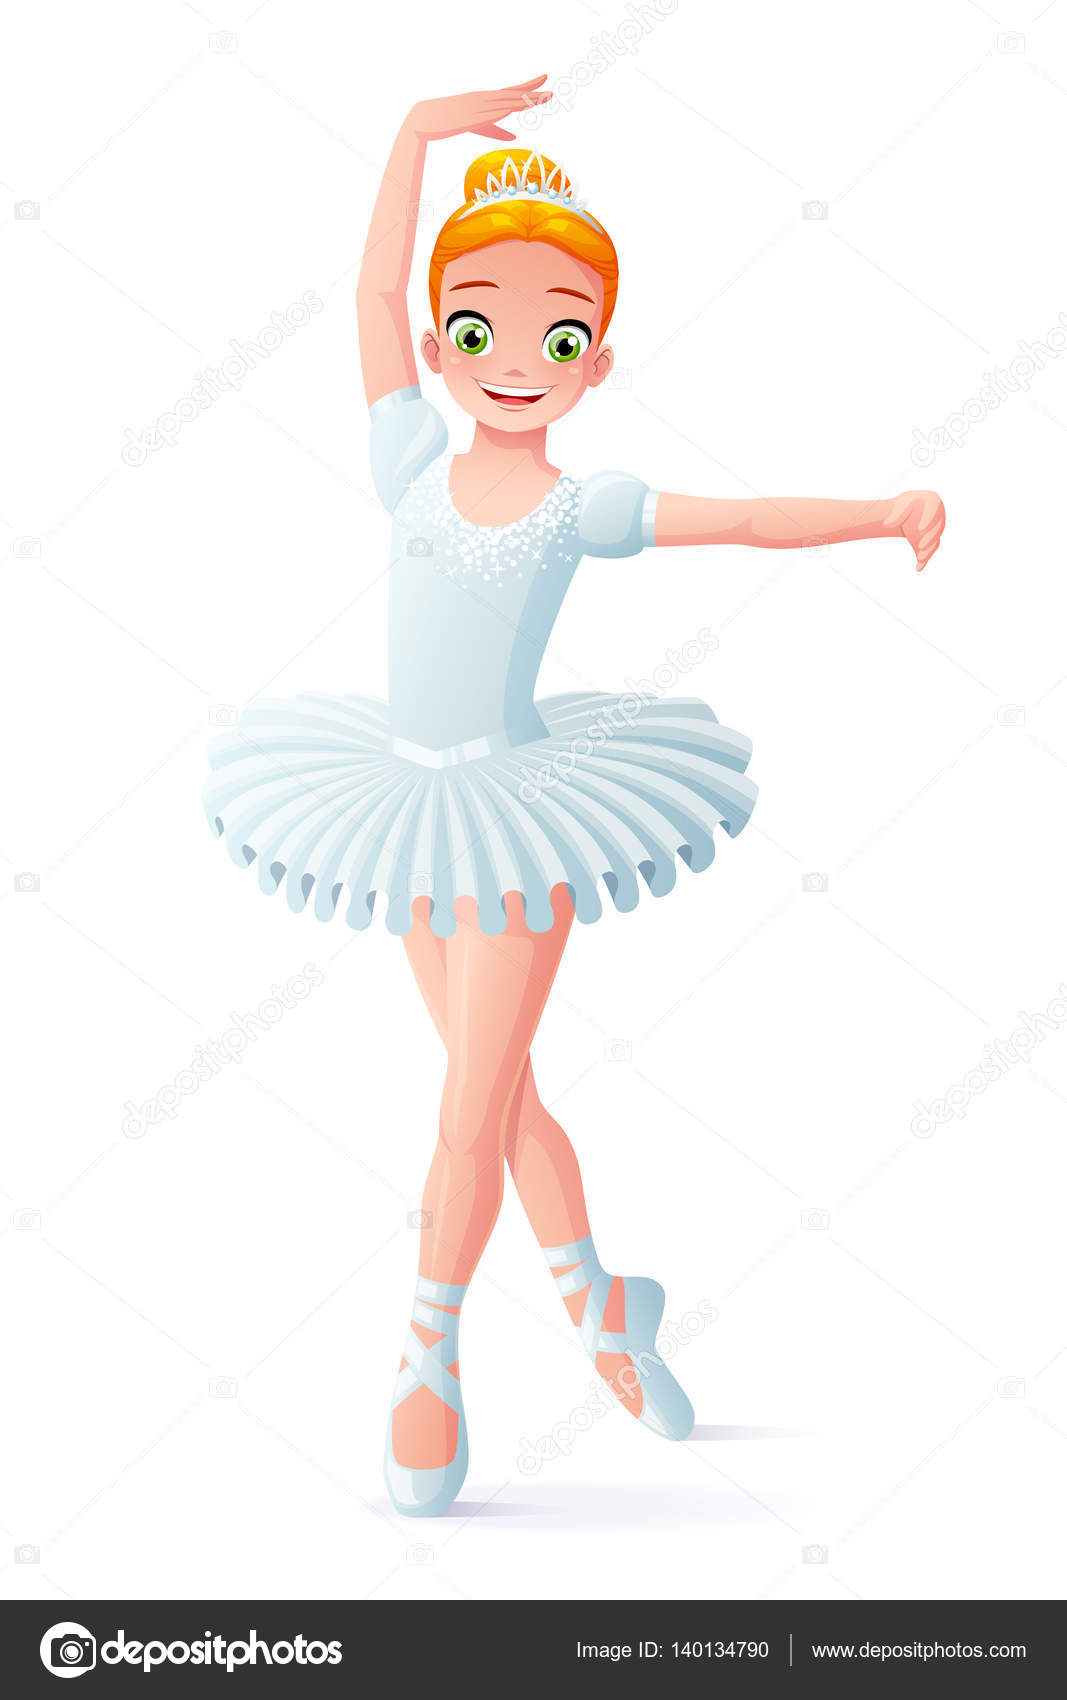 1f22e27ec47e4 Cute smiling young dancing ballerina girl in white tutu dress. Cartoon  style vector illustration isolated on white background.